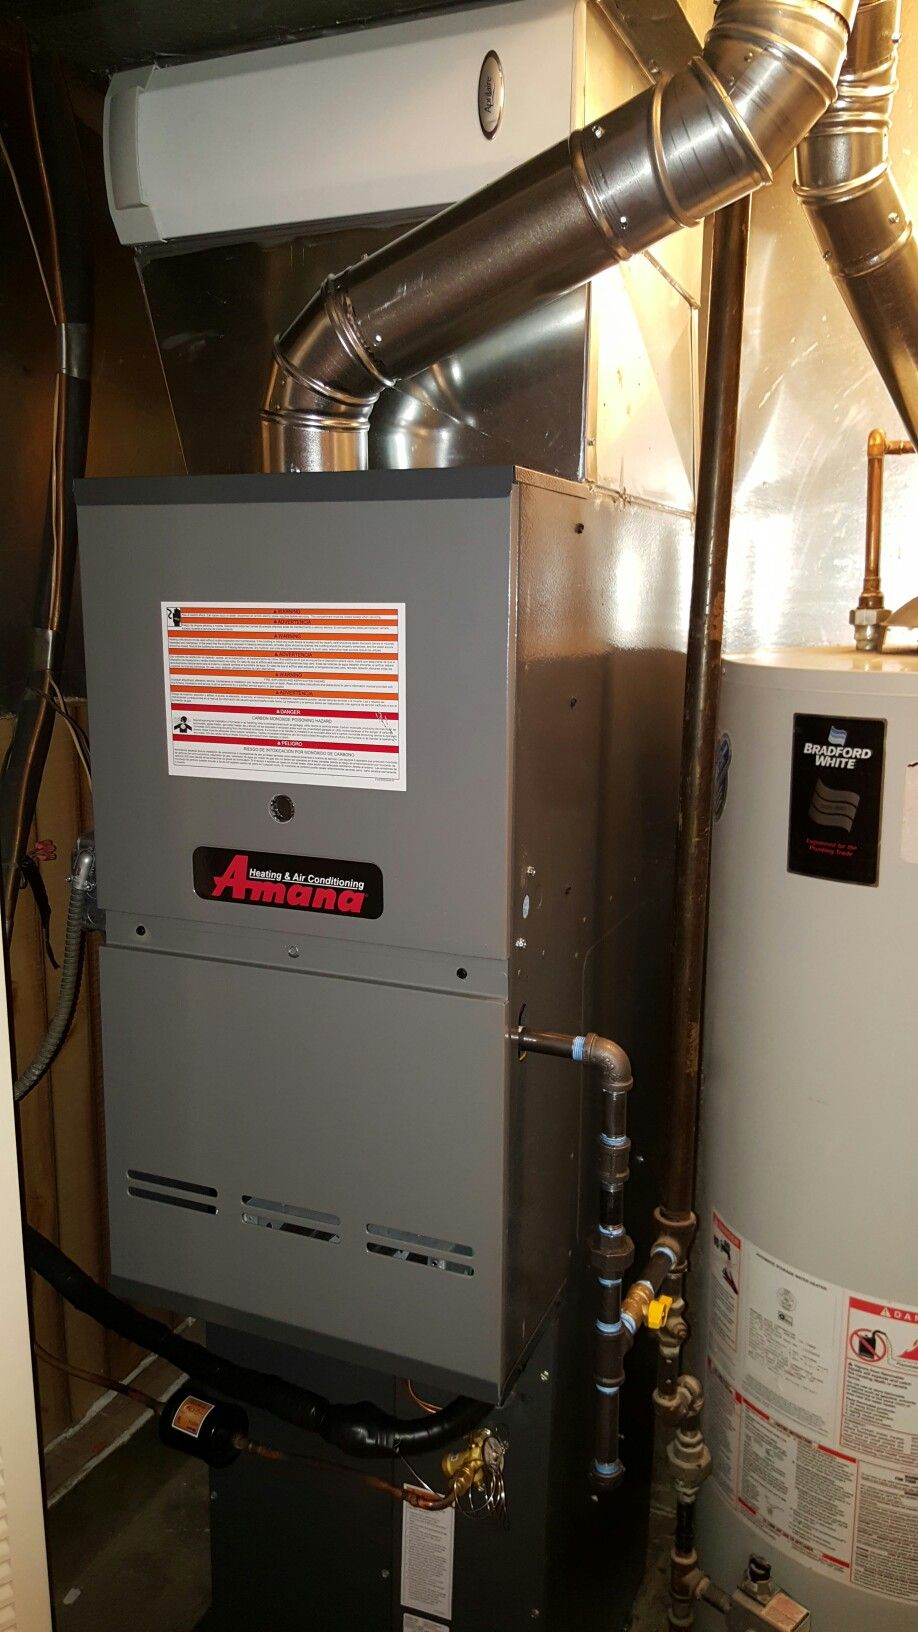 hight resolution of amana 2 stage variable speed downflow 80 non condensing furnace w an aprilaire media air cleaner installed by compass heating and air conditioning